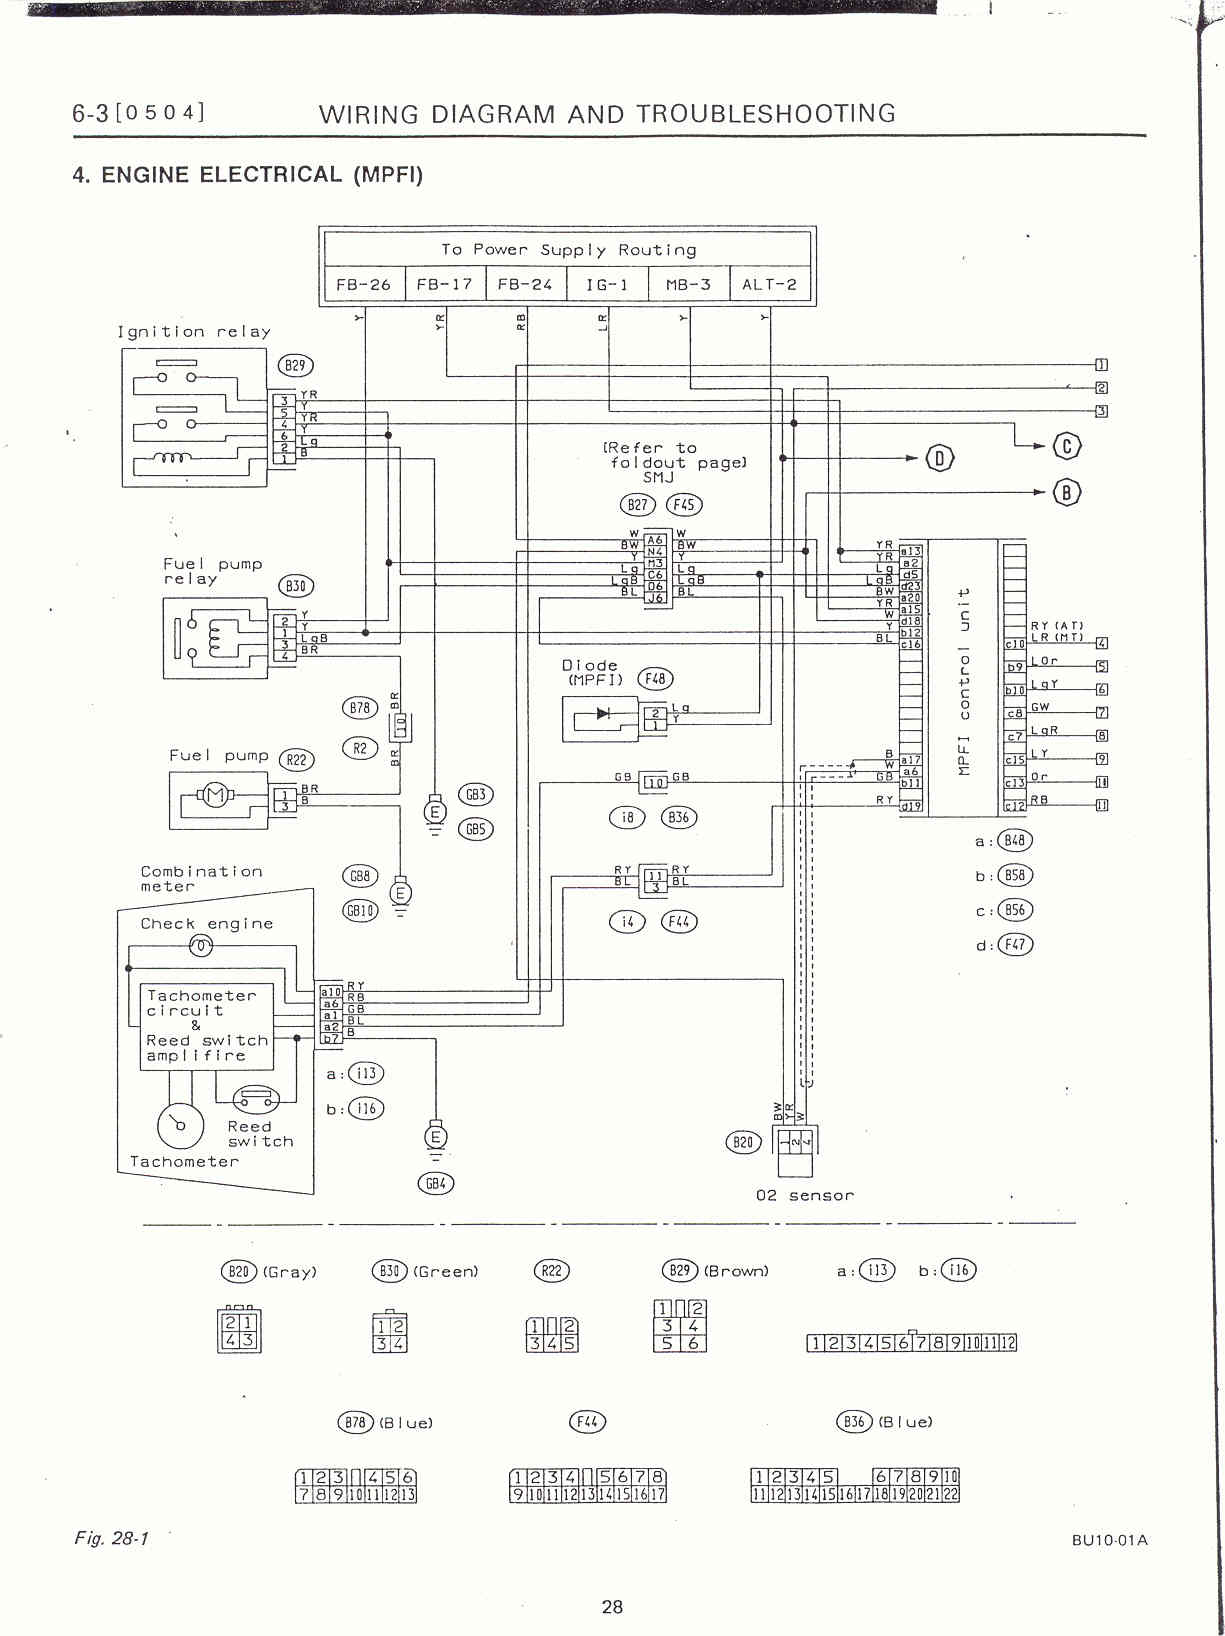 surrealmirage subaru legacy swap electrical info notes engine electrical page 1